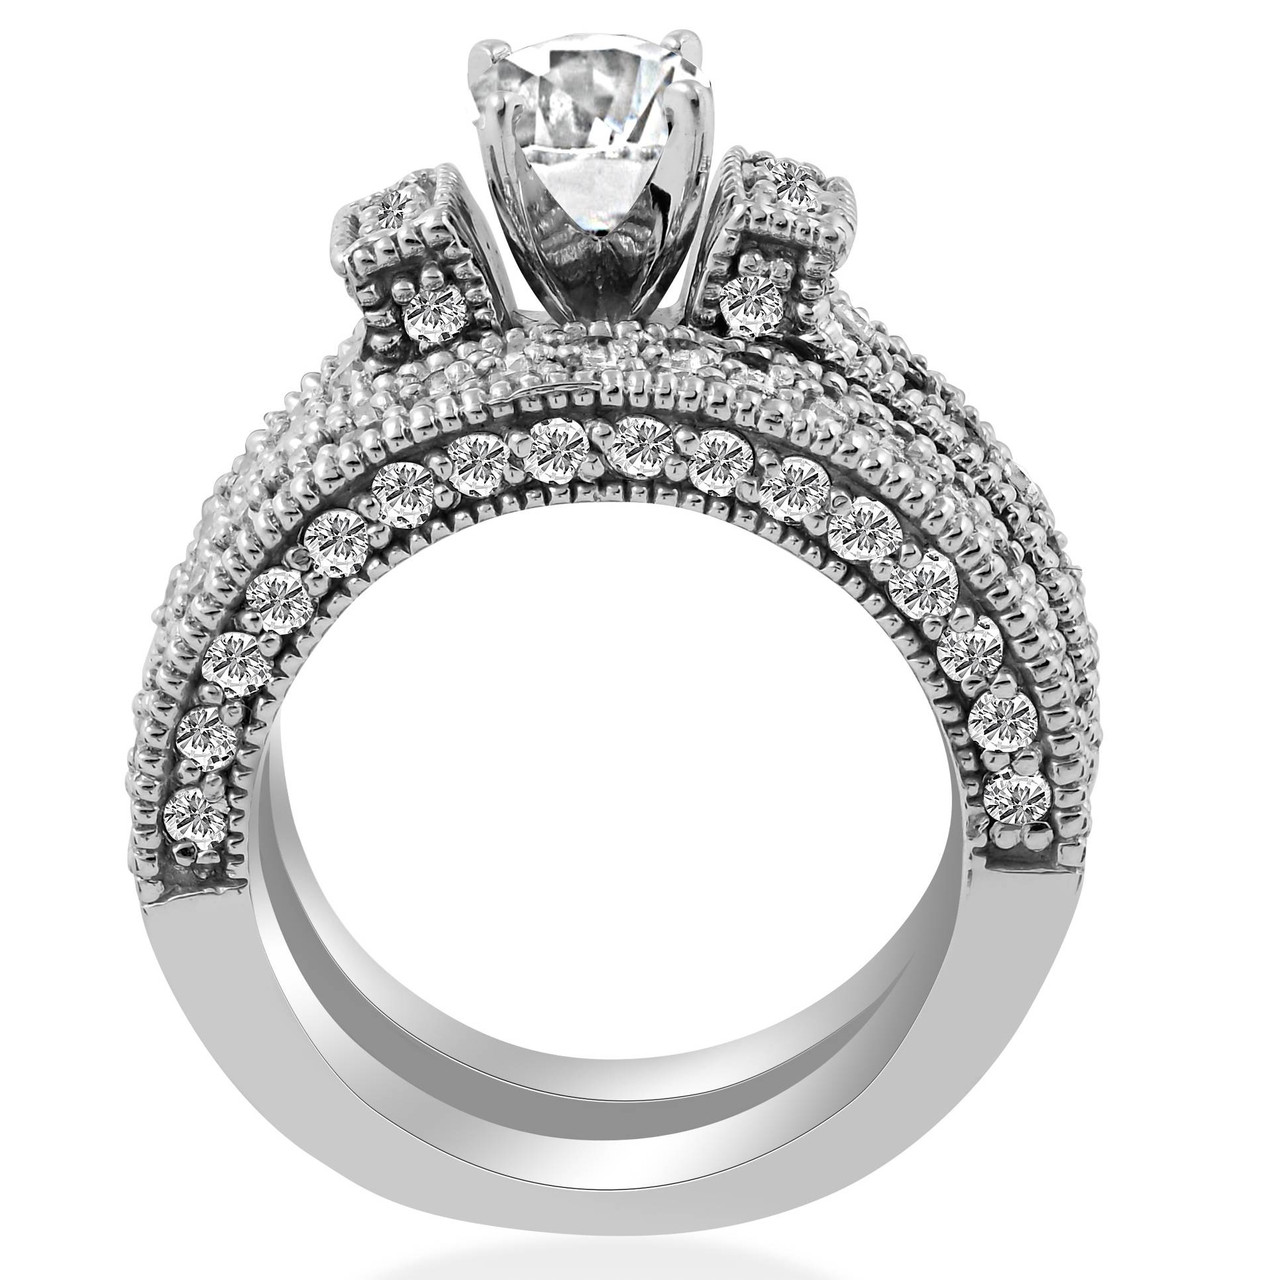 bbed1f0333b7b4 ... Pave Diamond Engagemnt Wedding Ring Set 14K White Gold (G/H, I1-I2).  ENGS1048.  https://d3d71ba2asa5oz.cloudfront.net/53000589/images/engs1048large12345.